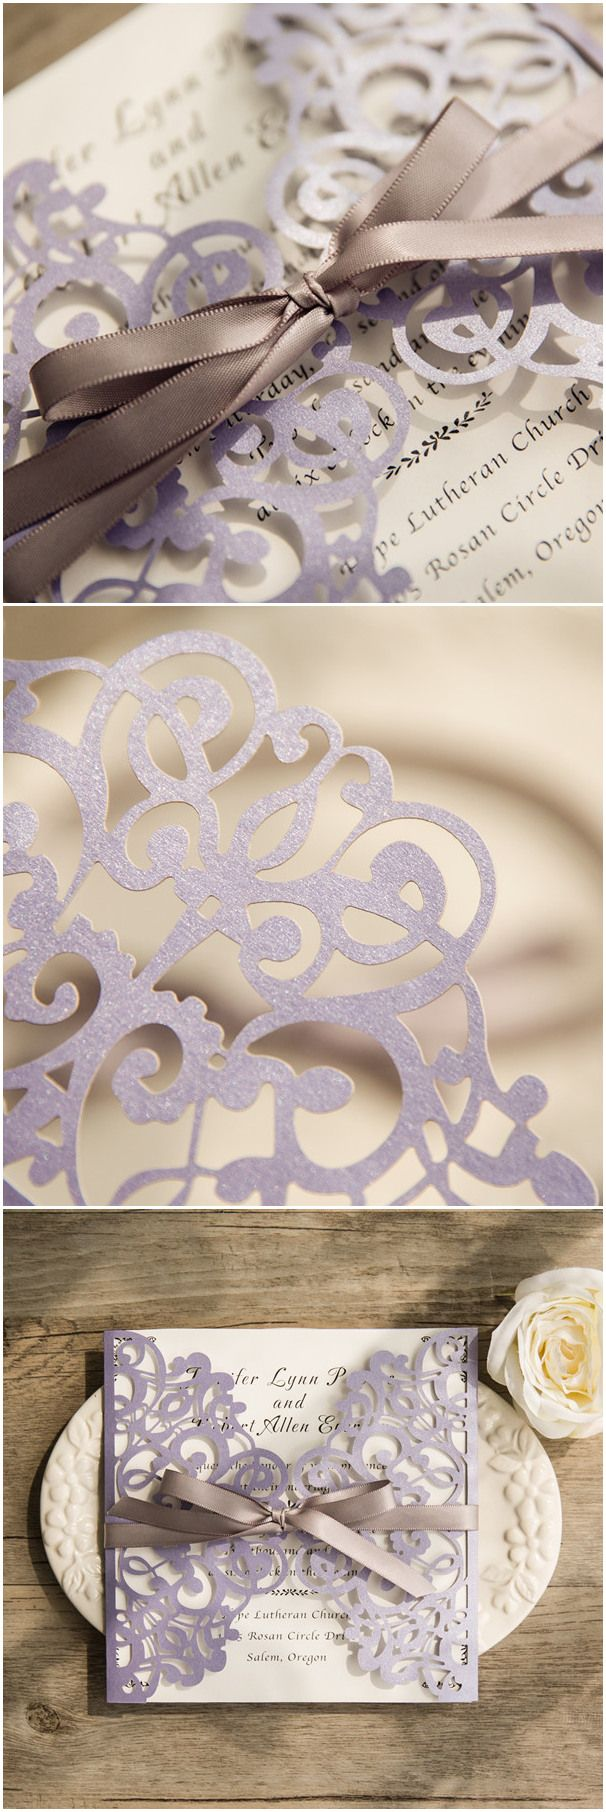 elegant laser cut wedding invitations for lavender and gray wedding color schemes @elegantwinvites